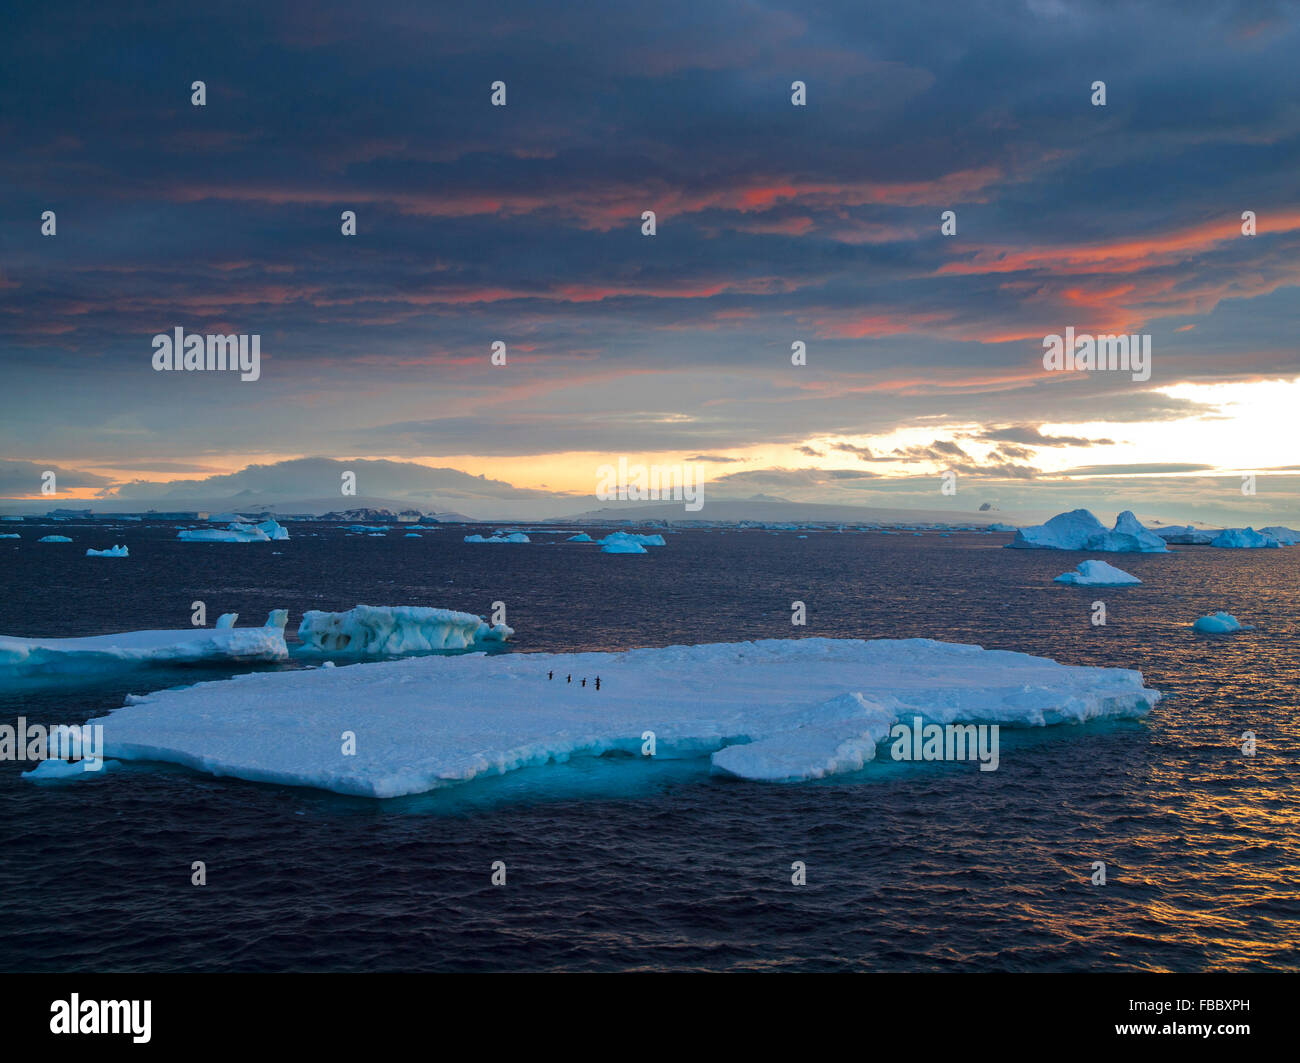 Sunrise, péninsule antarctique iceberg Photo Stock